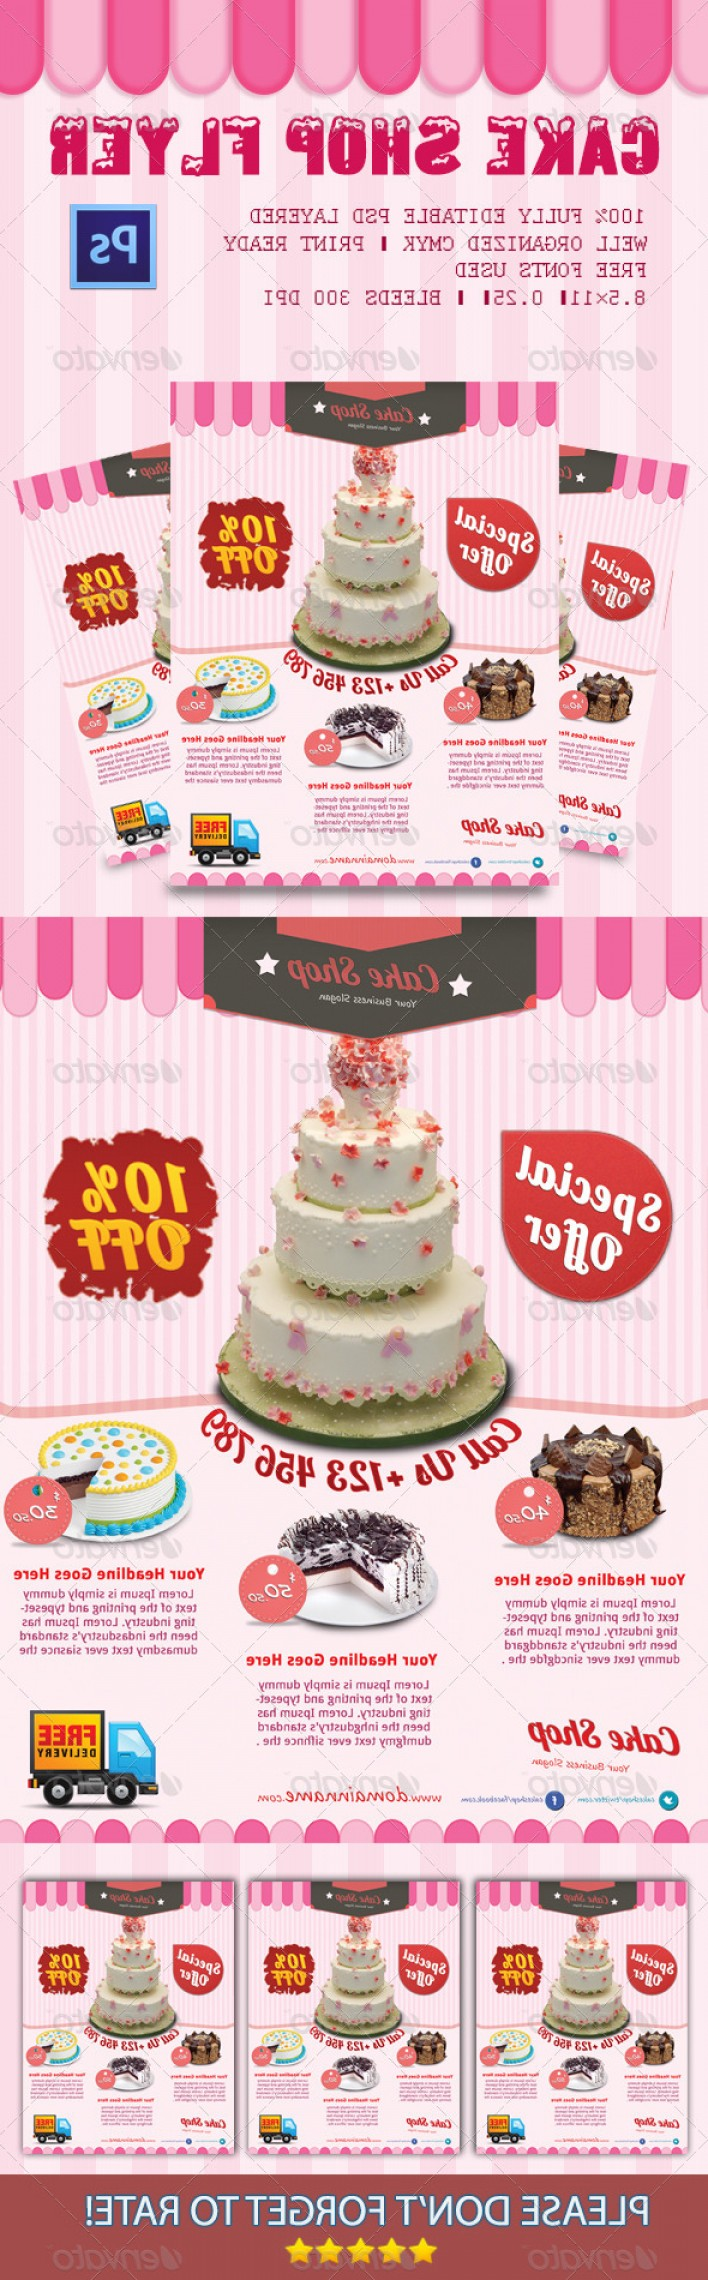 PSD Vector Vintage Cake: Graphics With Cakes In Print Templates